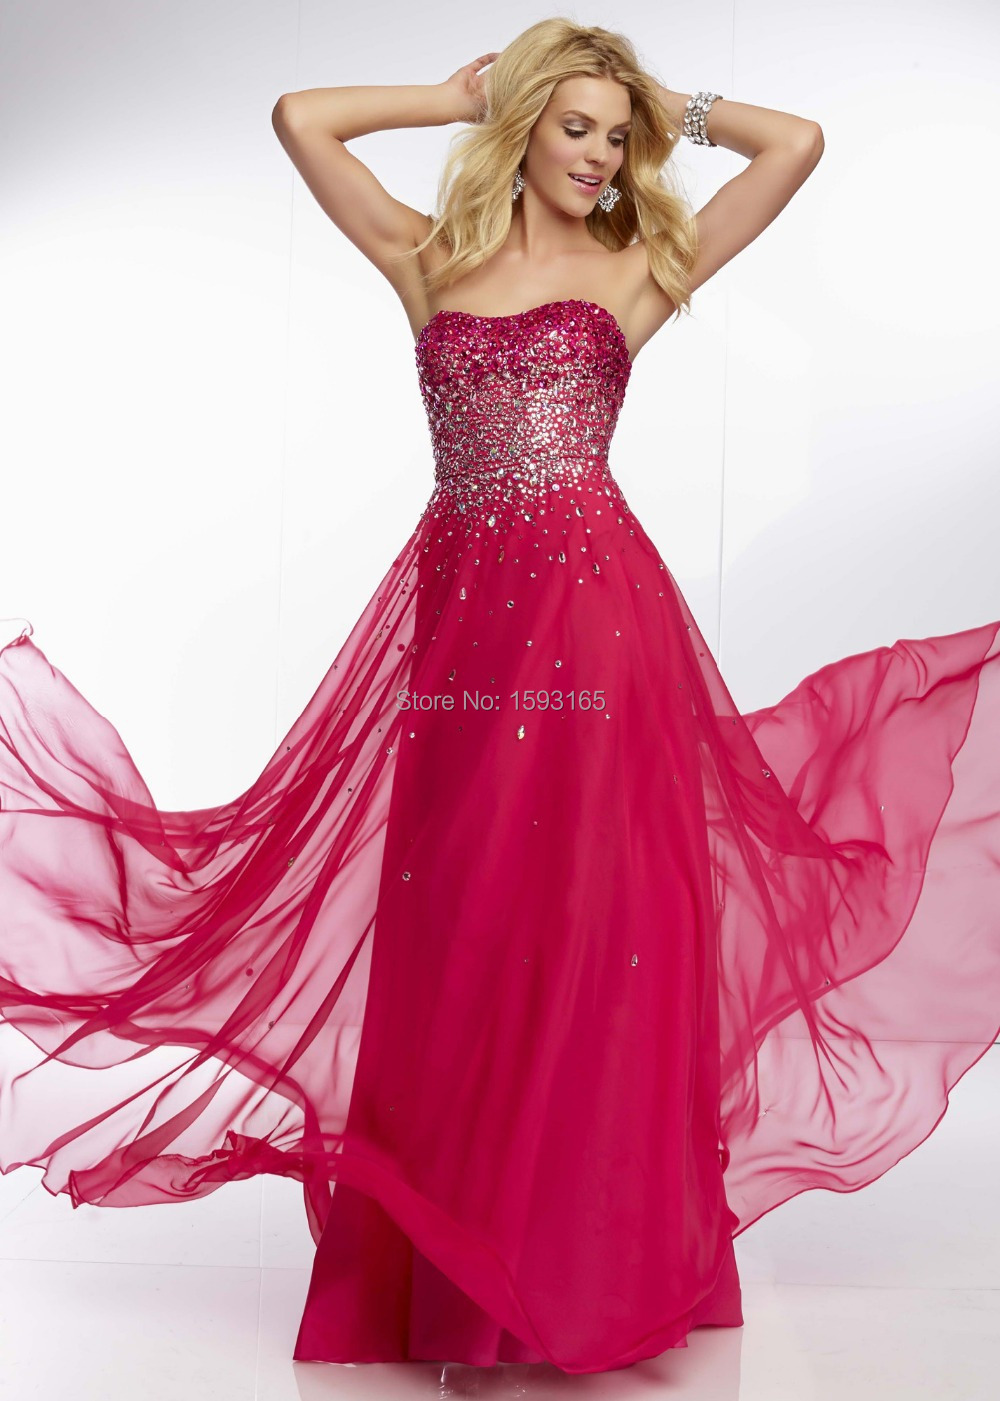 Strapless Flowy Prom Dresses | Cocktail Dresses 2016